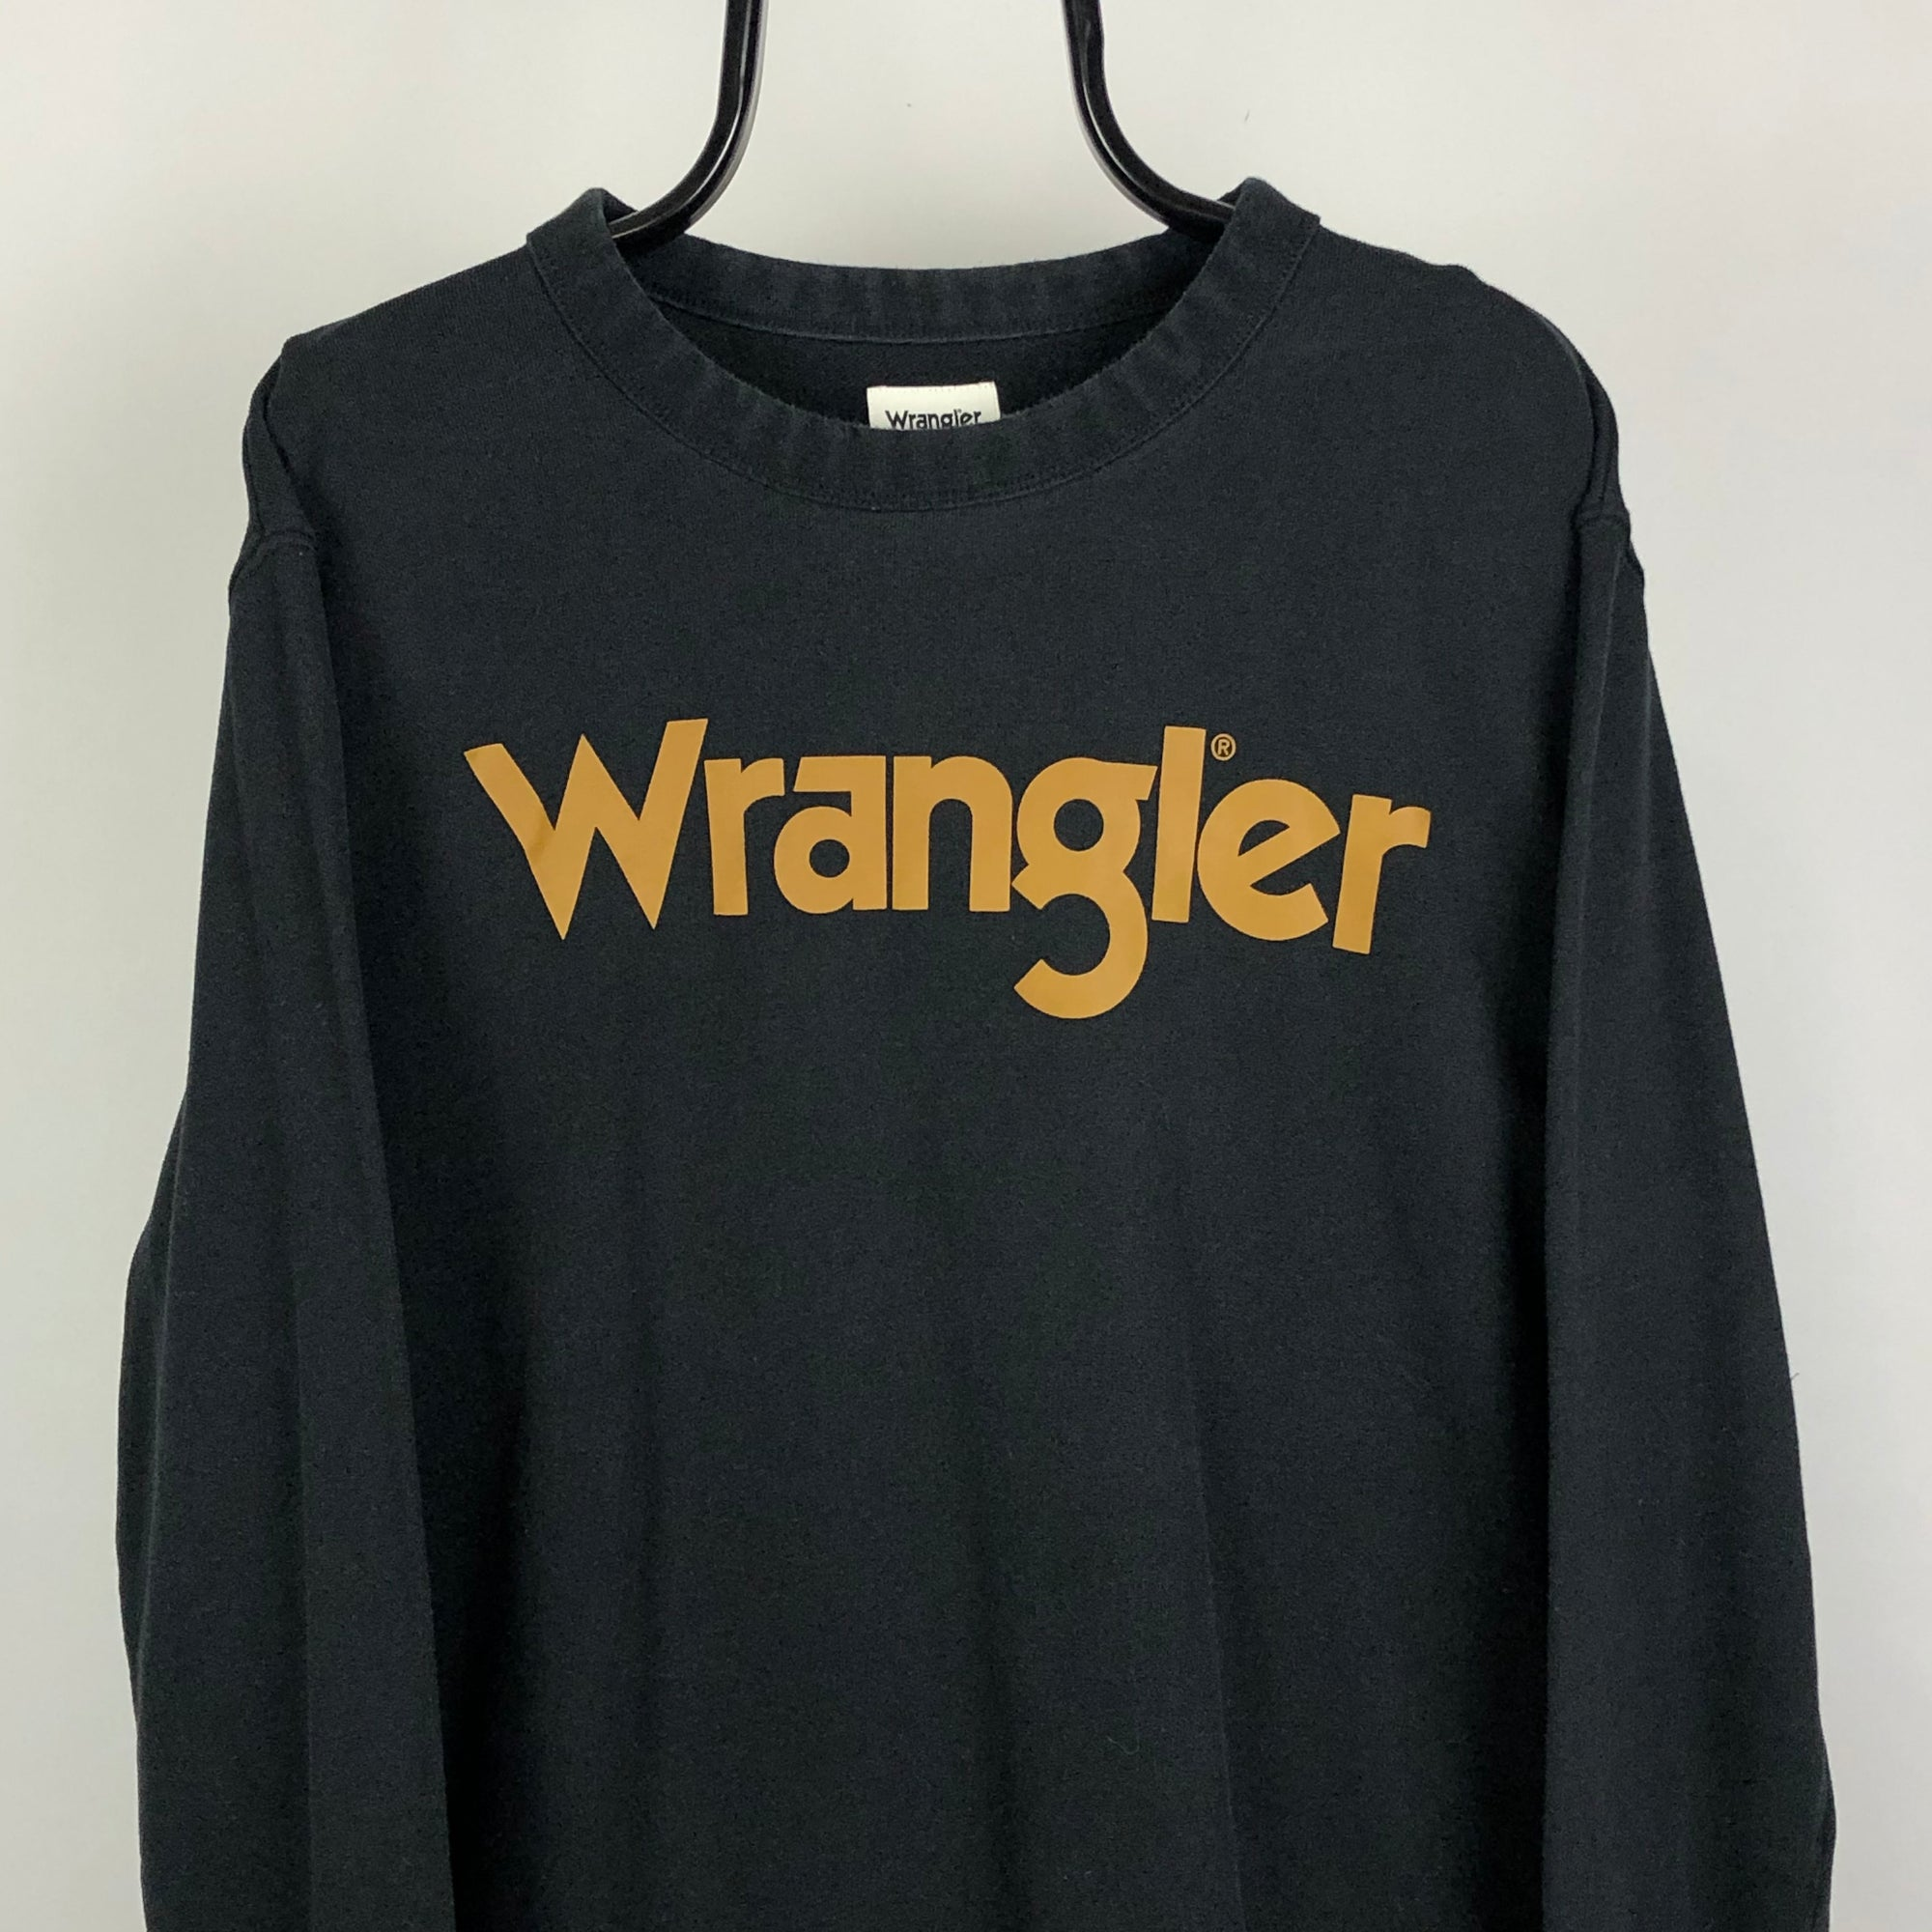 Wrangler Spellout Sweatshirt - Men's XL/Women's XXL